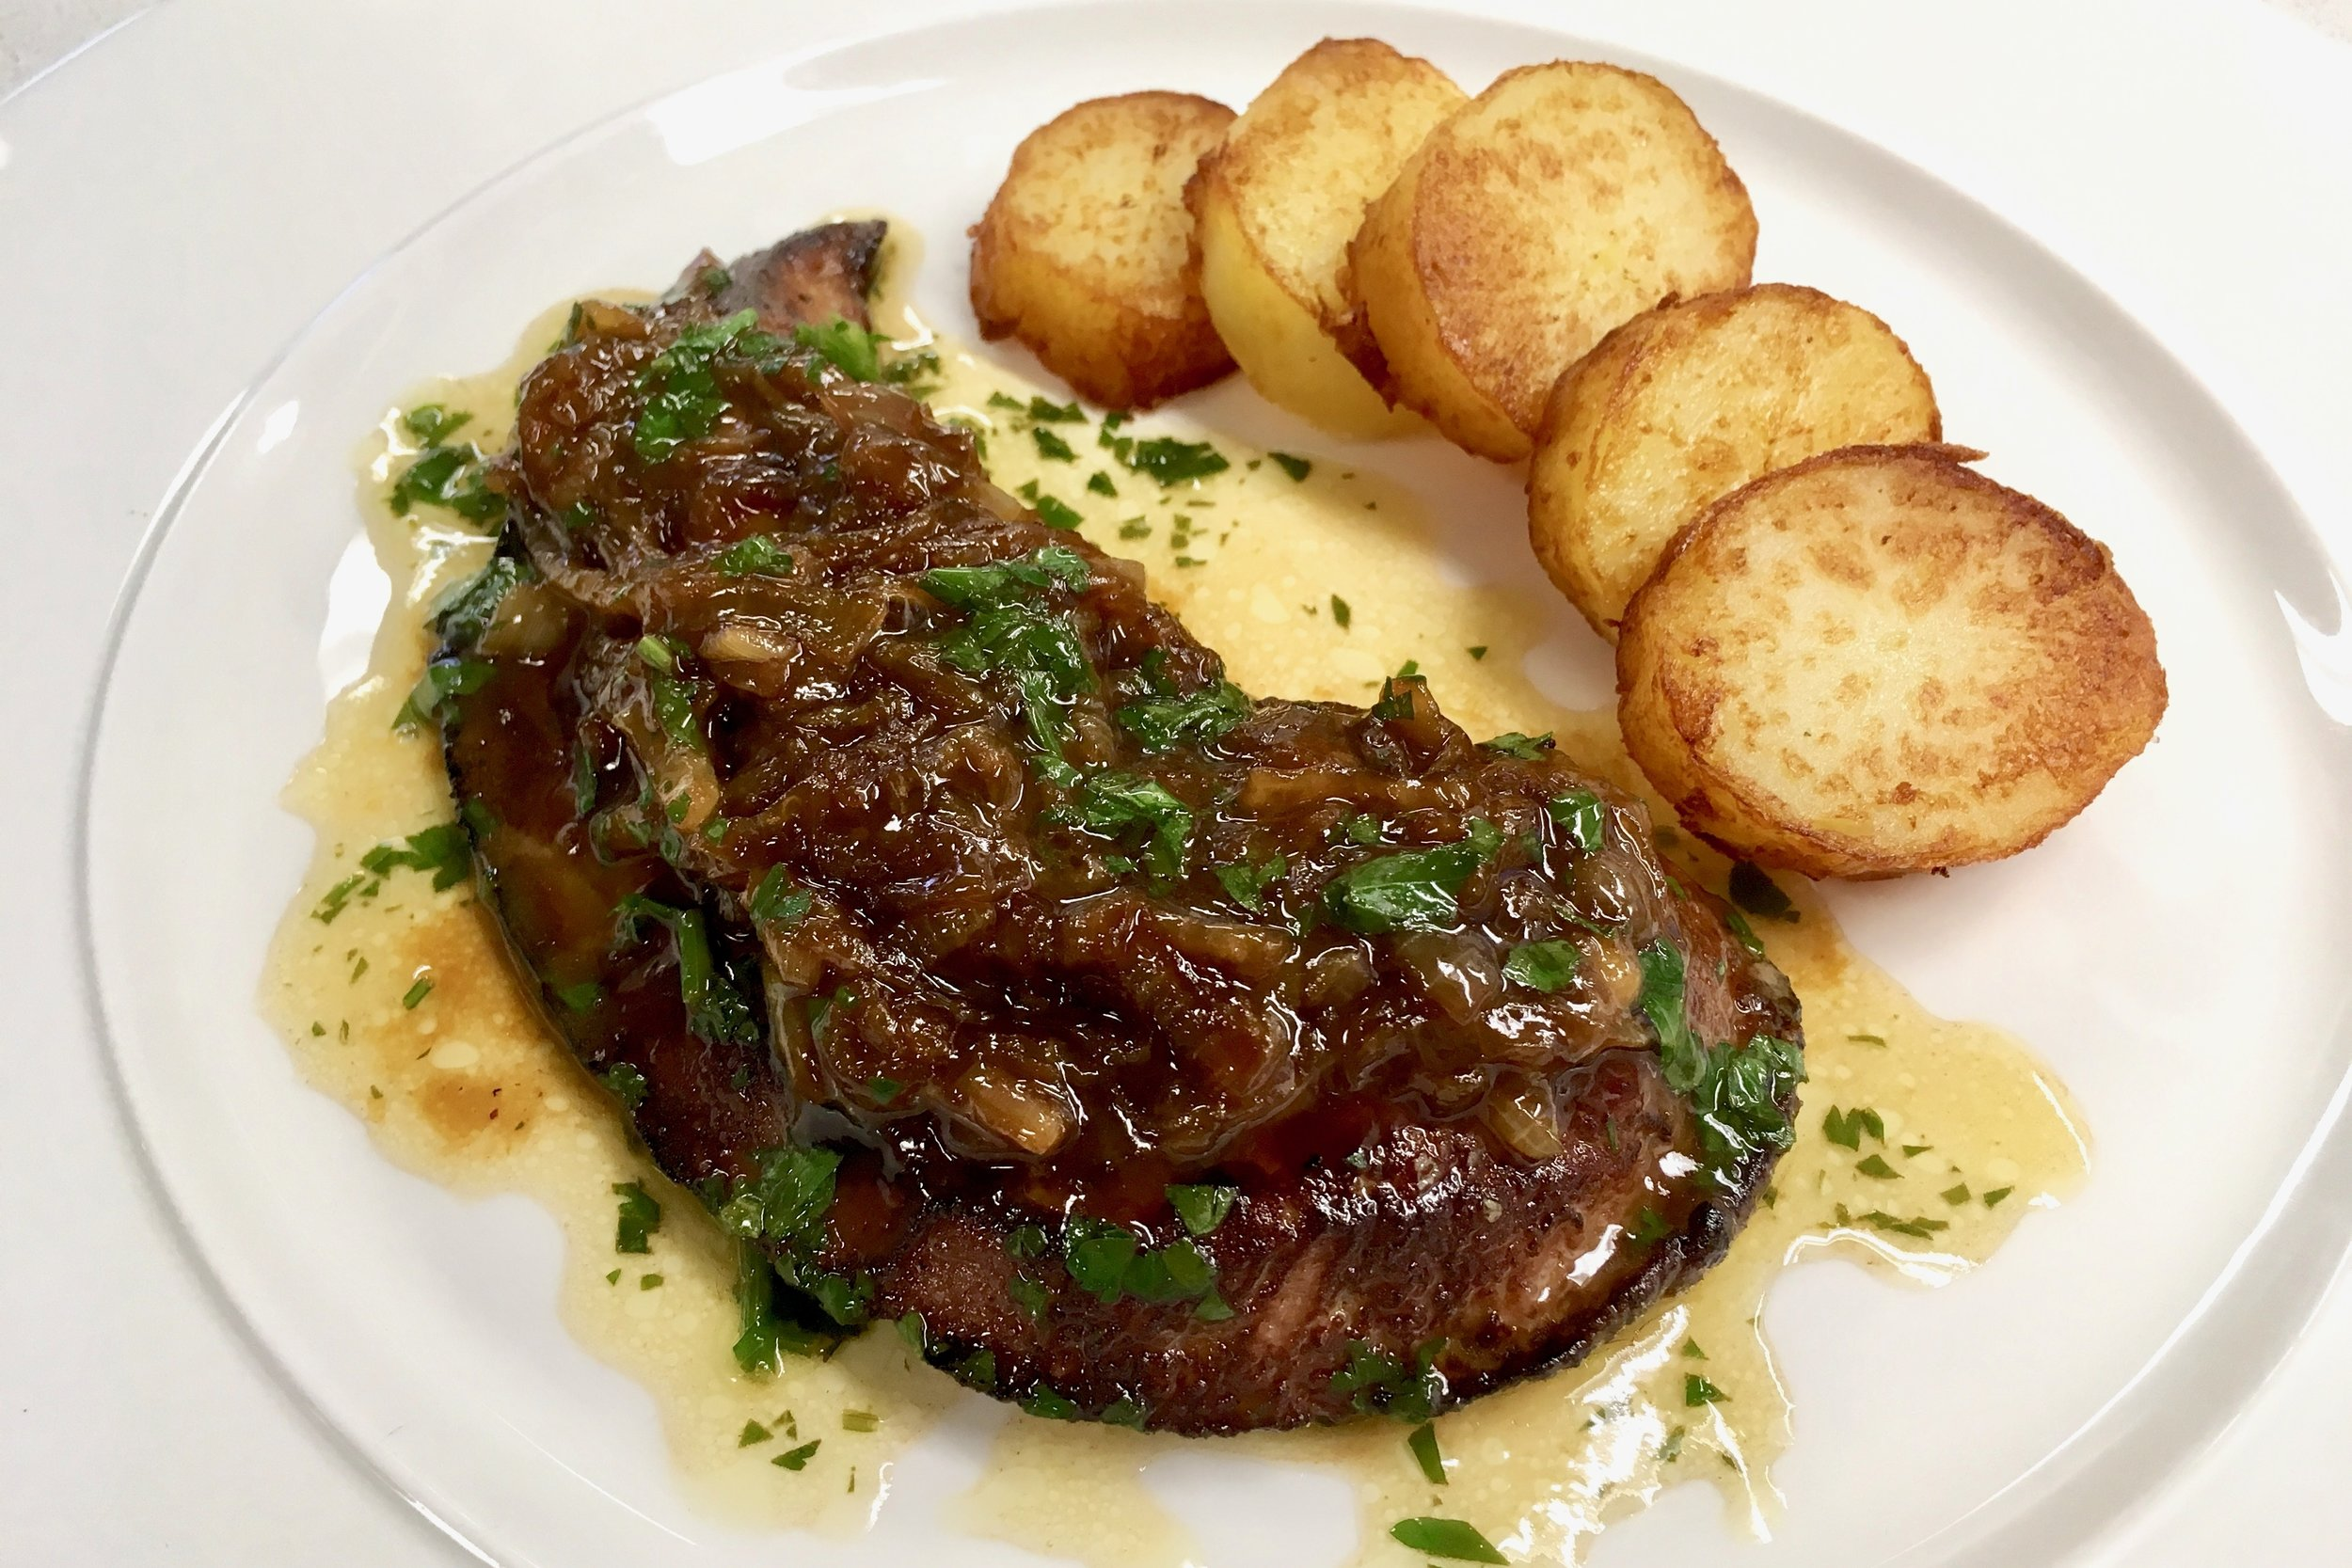 Pan-fried calf liver with onions and pan-fried potatoes